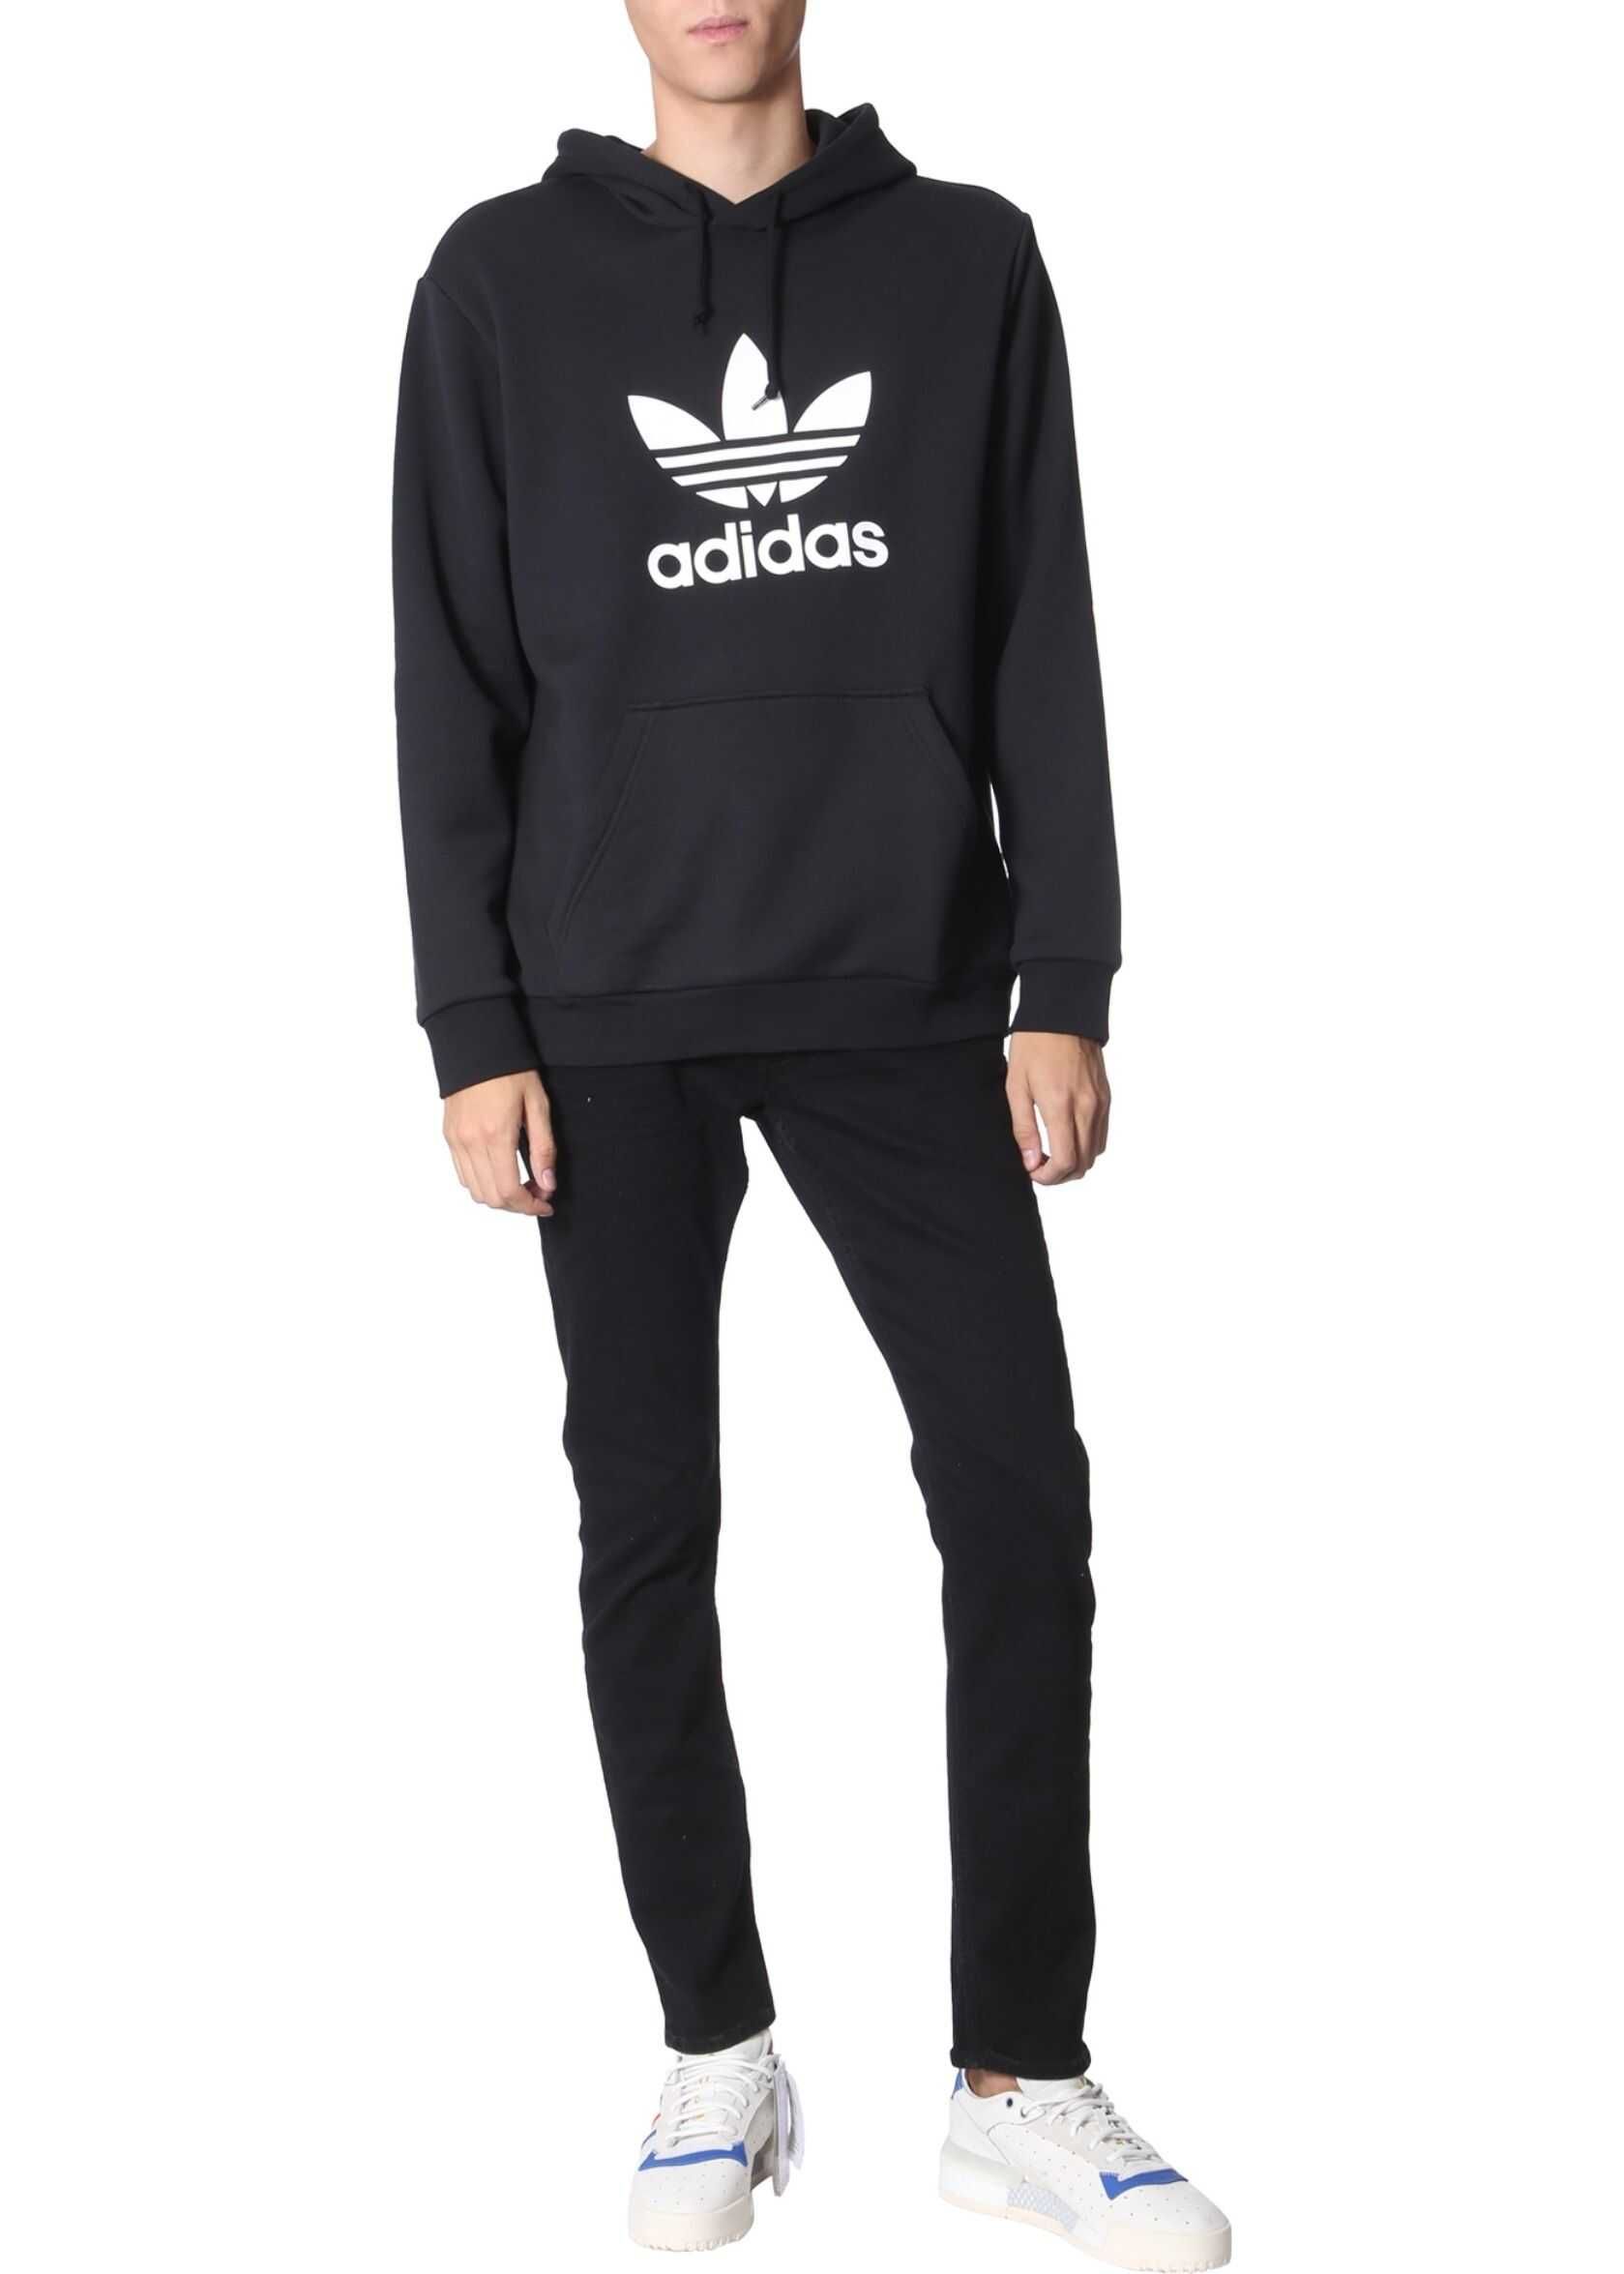 adidas Originals Hooded Sweatshirt BLACK